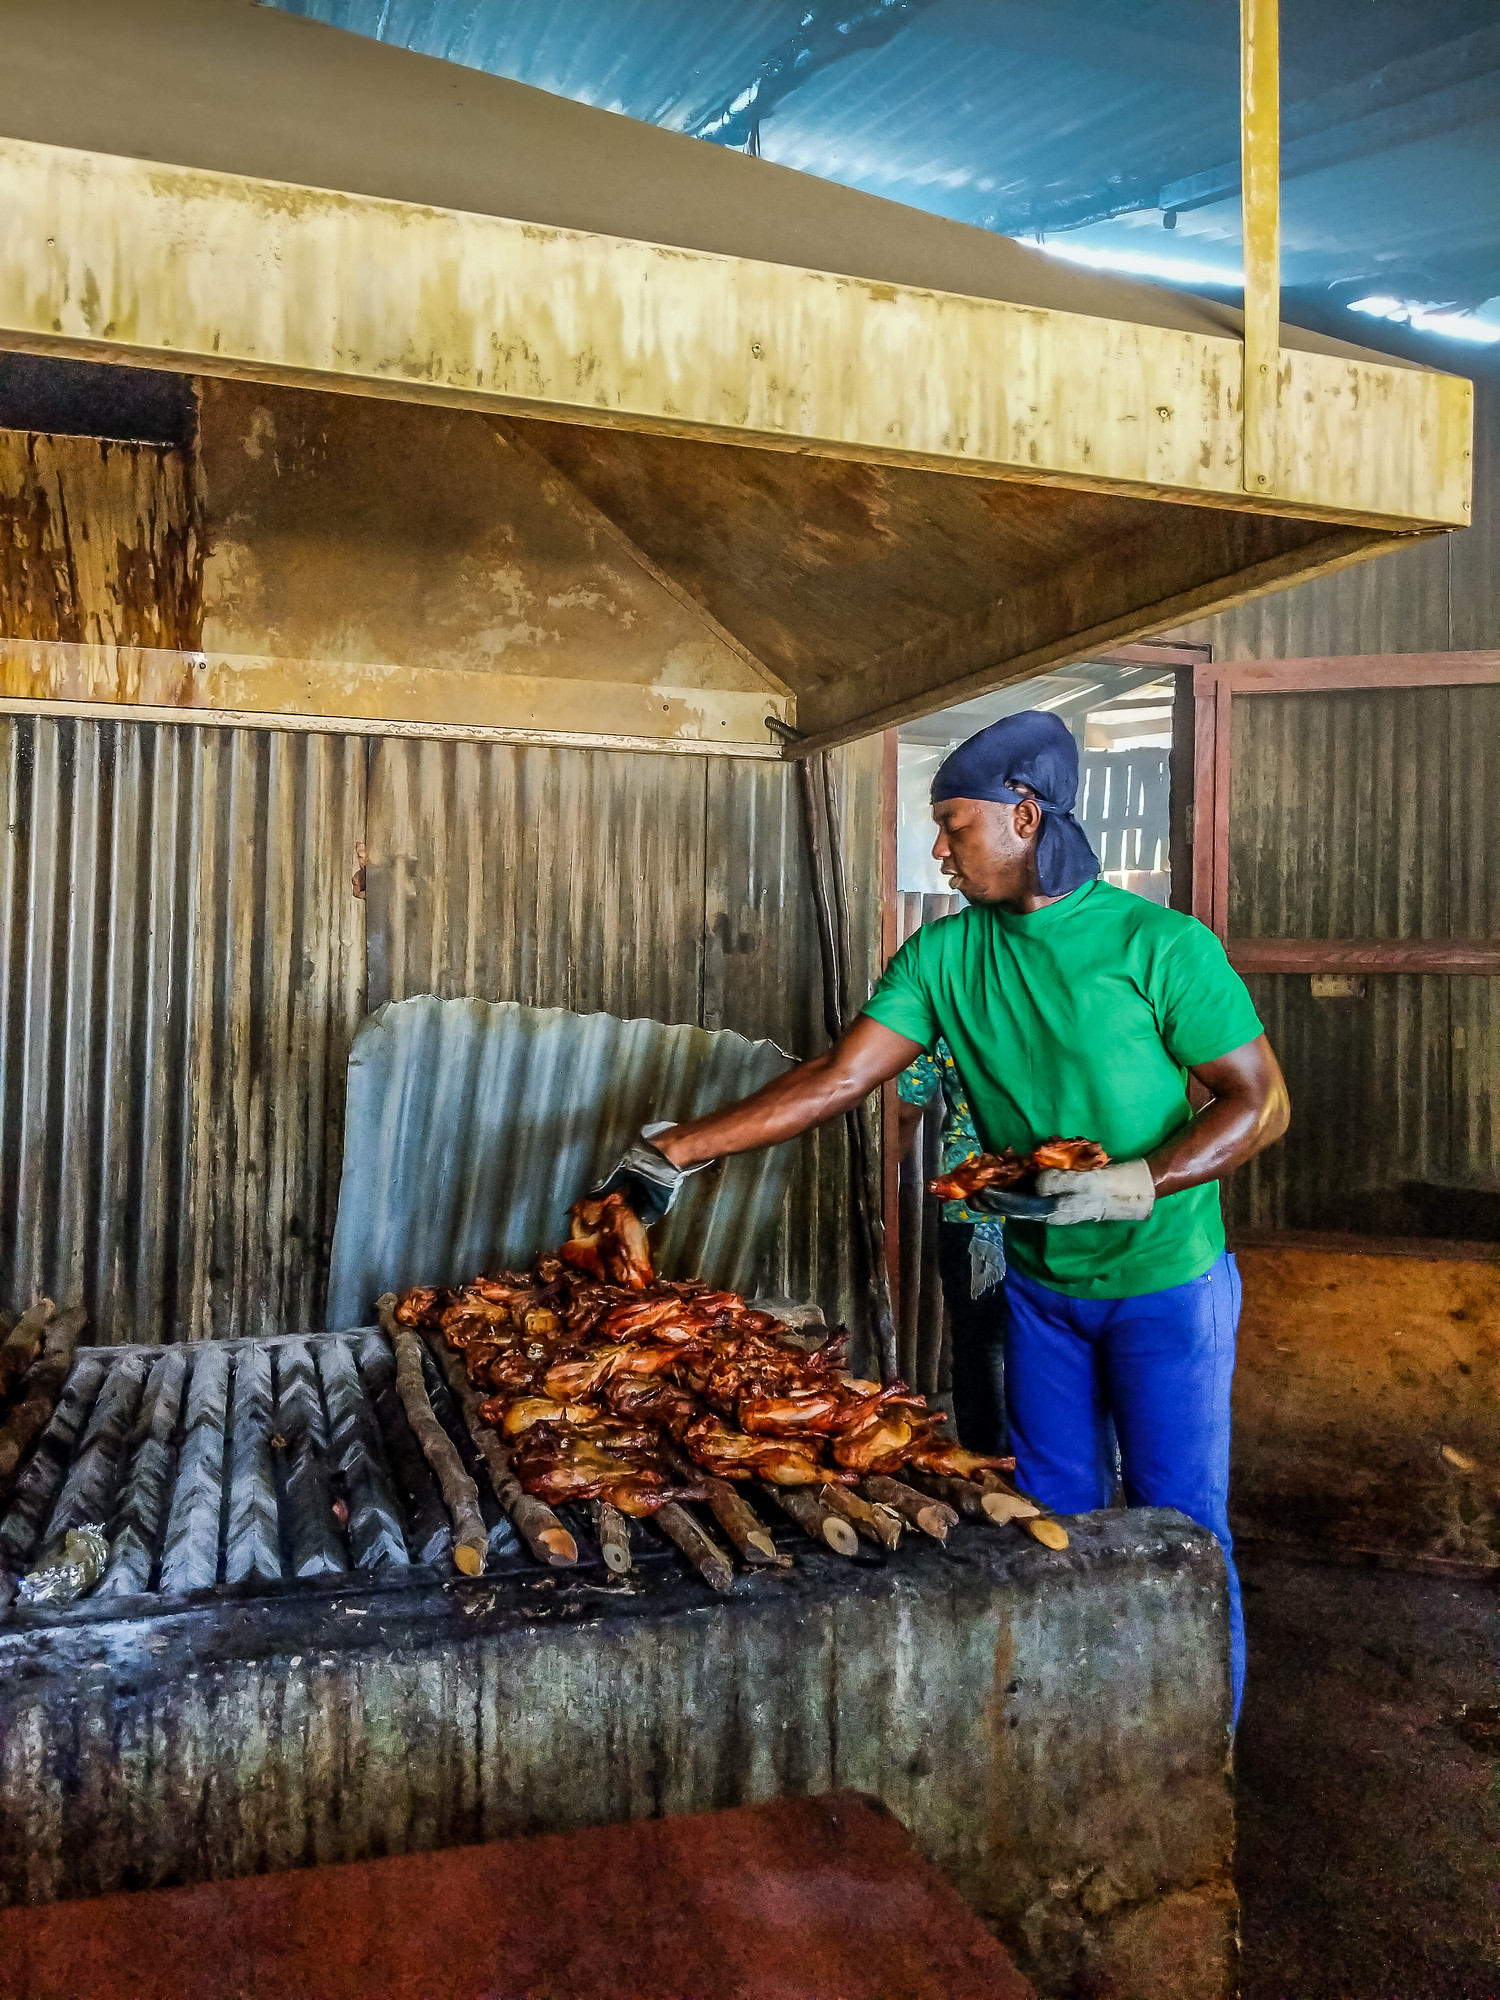 Jerk chicken is just one traditional Jamaican food you need to try. The ultimate guide for what to eat in Jamaica, our best picks for 27 dishes, 6 desserts and 12 drinks you won't want to leave the island without trying.